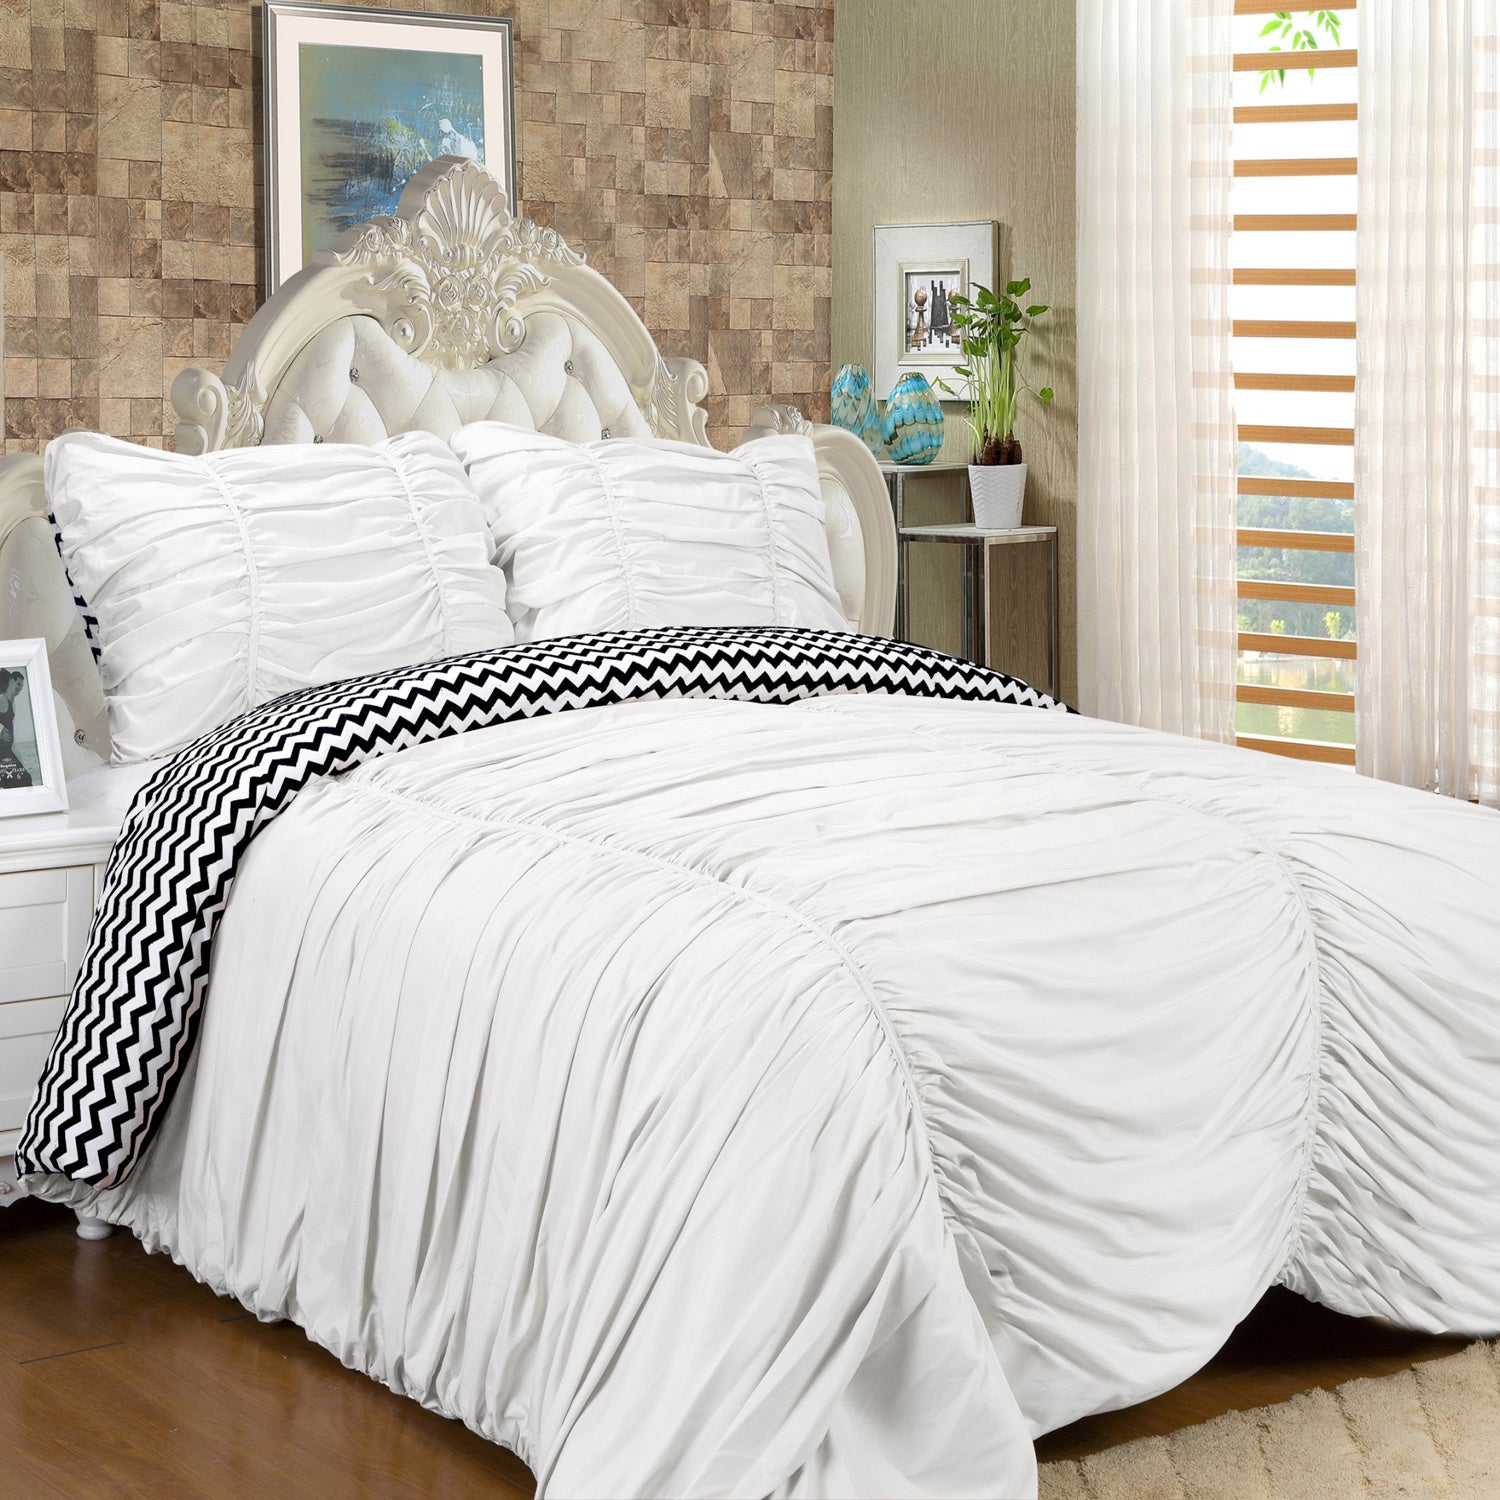 french luxury country paris ruched lace bedding chic princess white cover duvet ruffle shabby cottage set pink